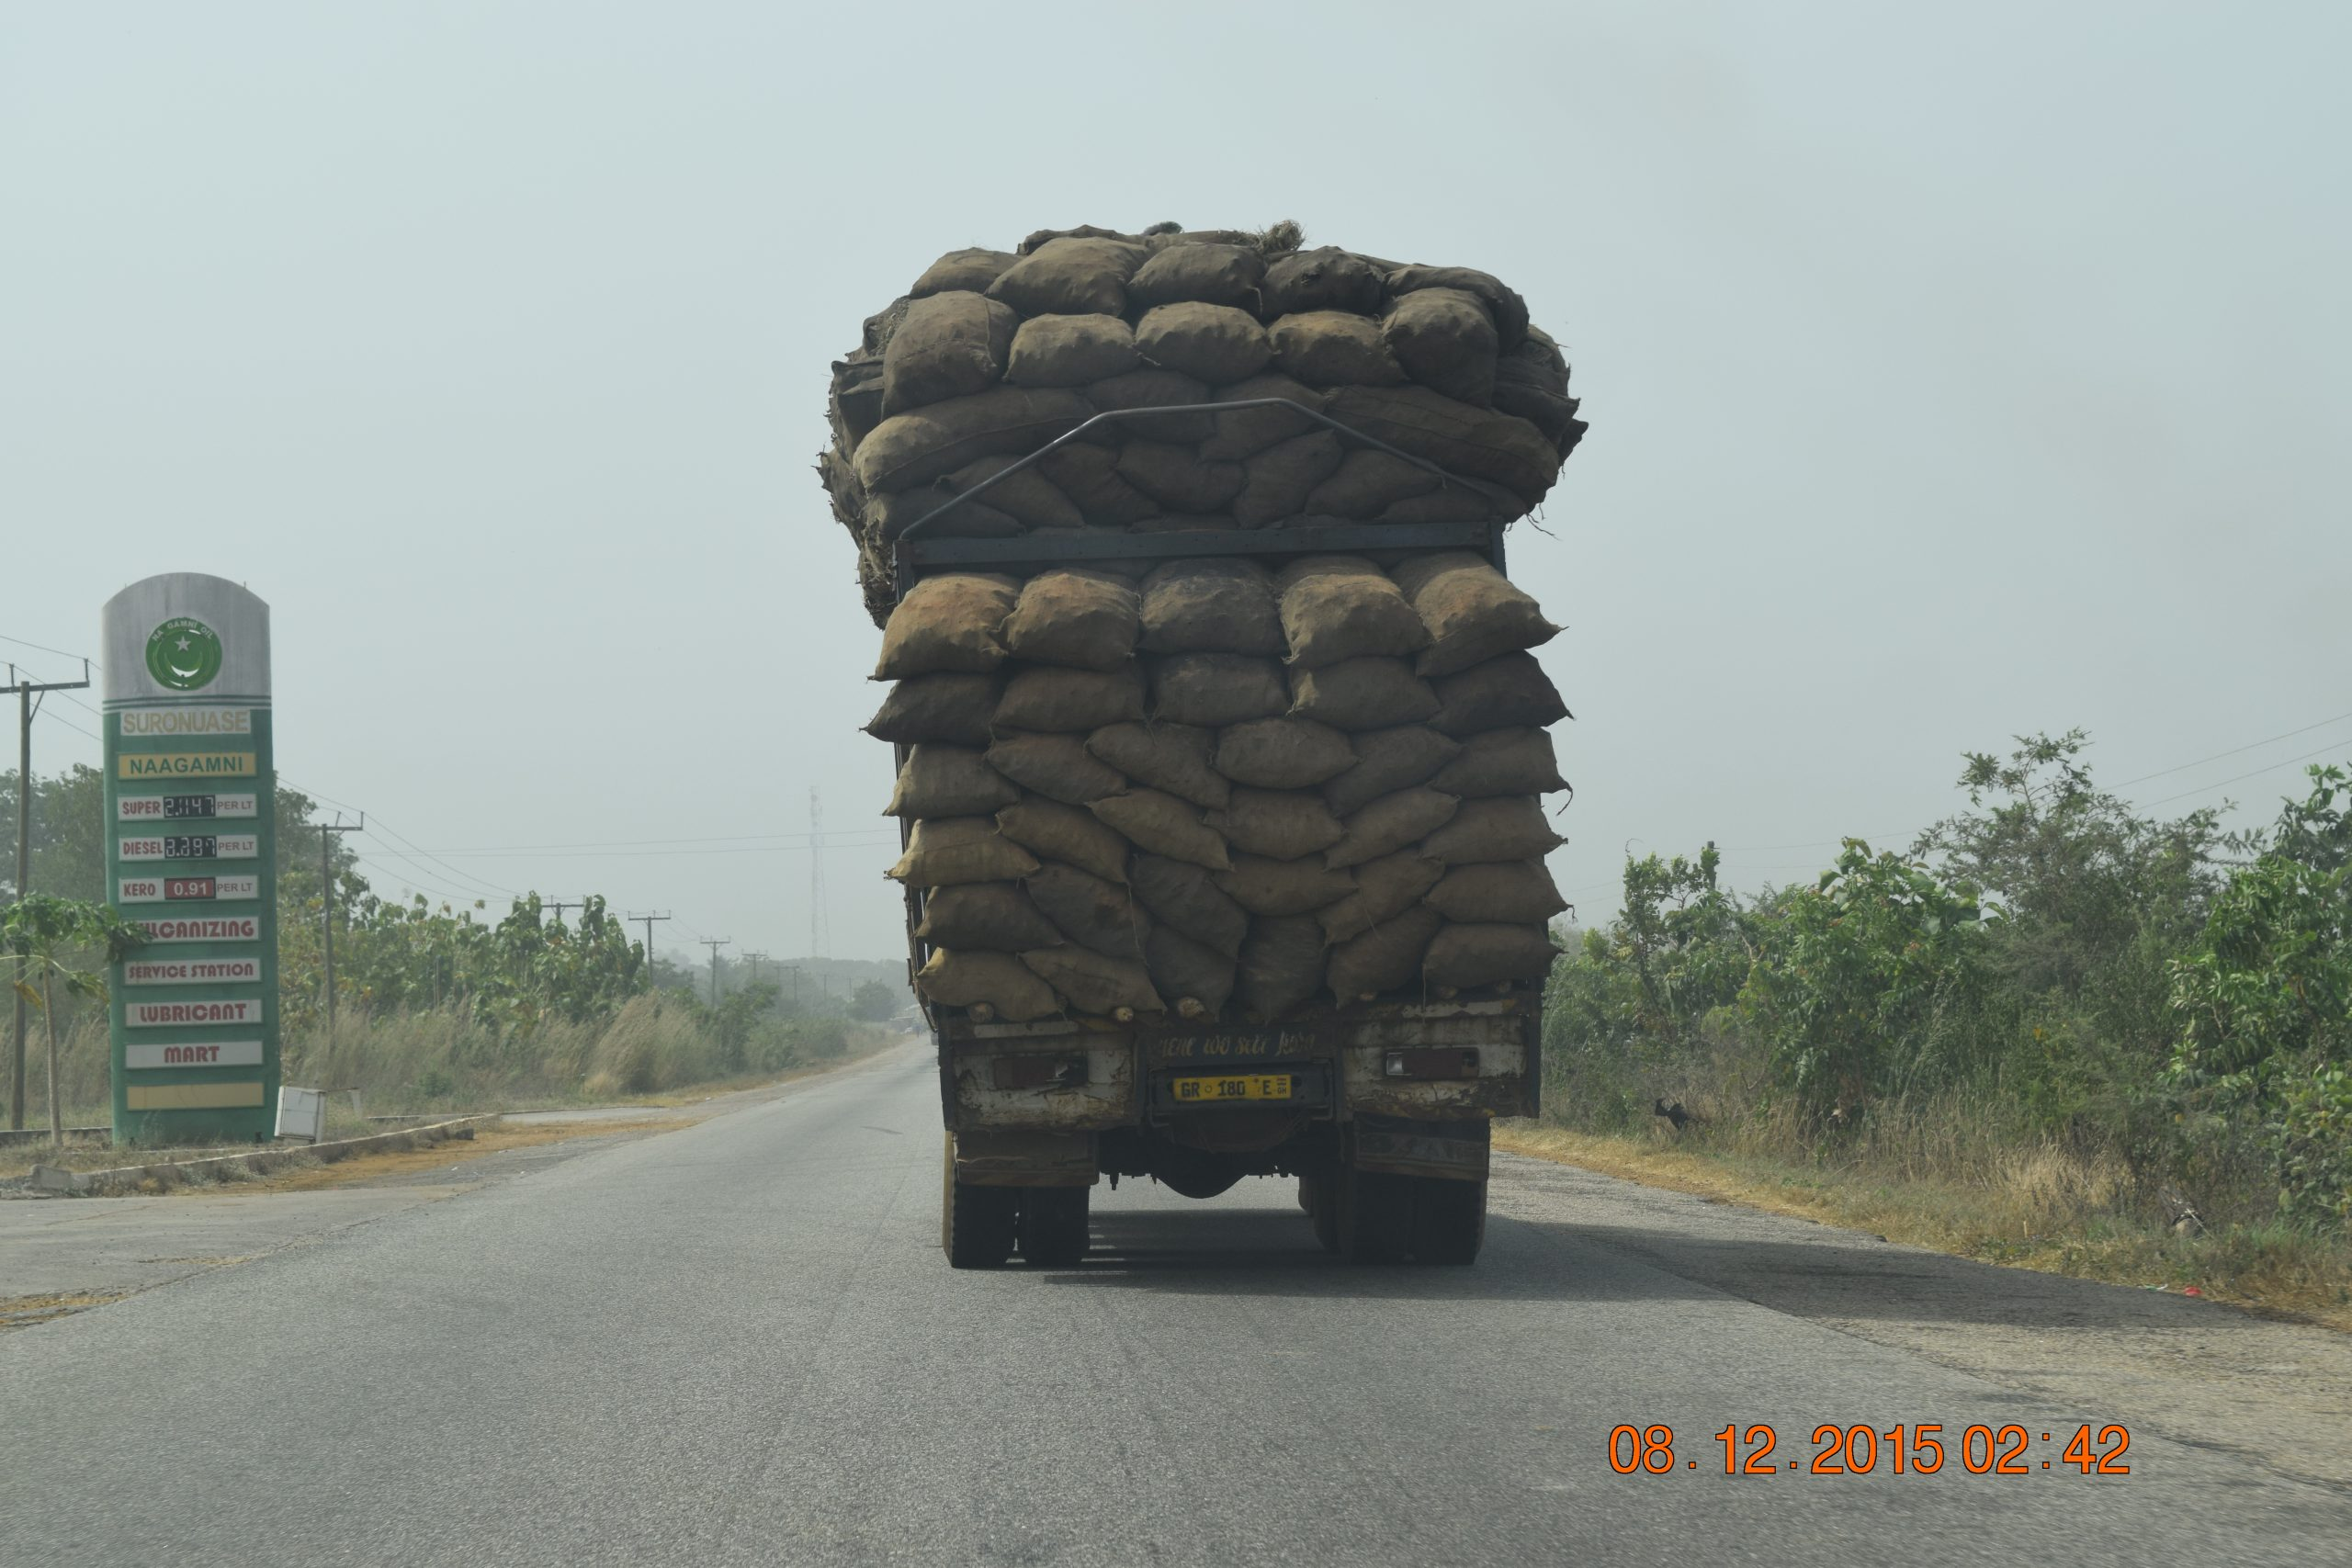 Ghana Trip - Dec 2015 - Truck with Crops